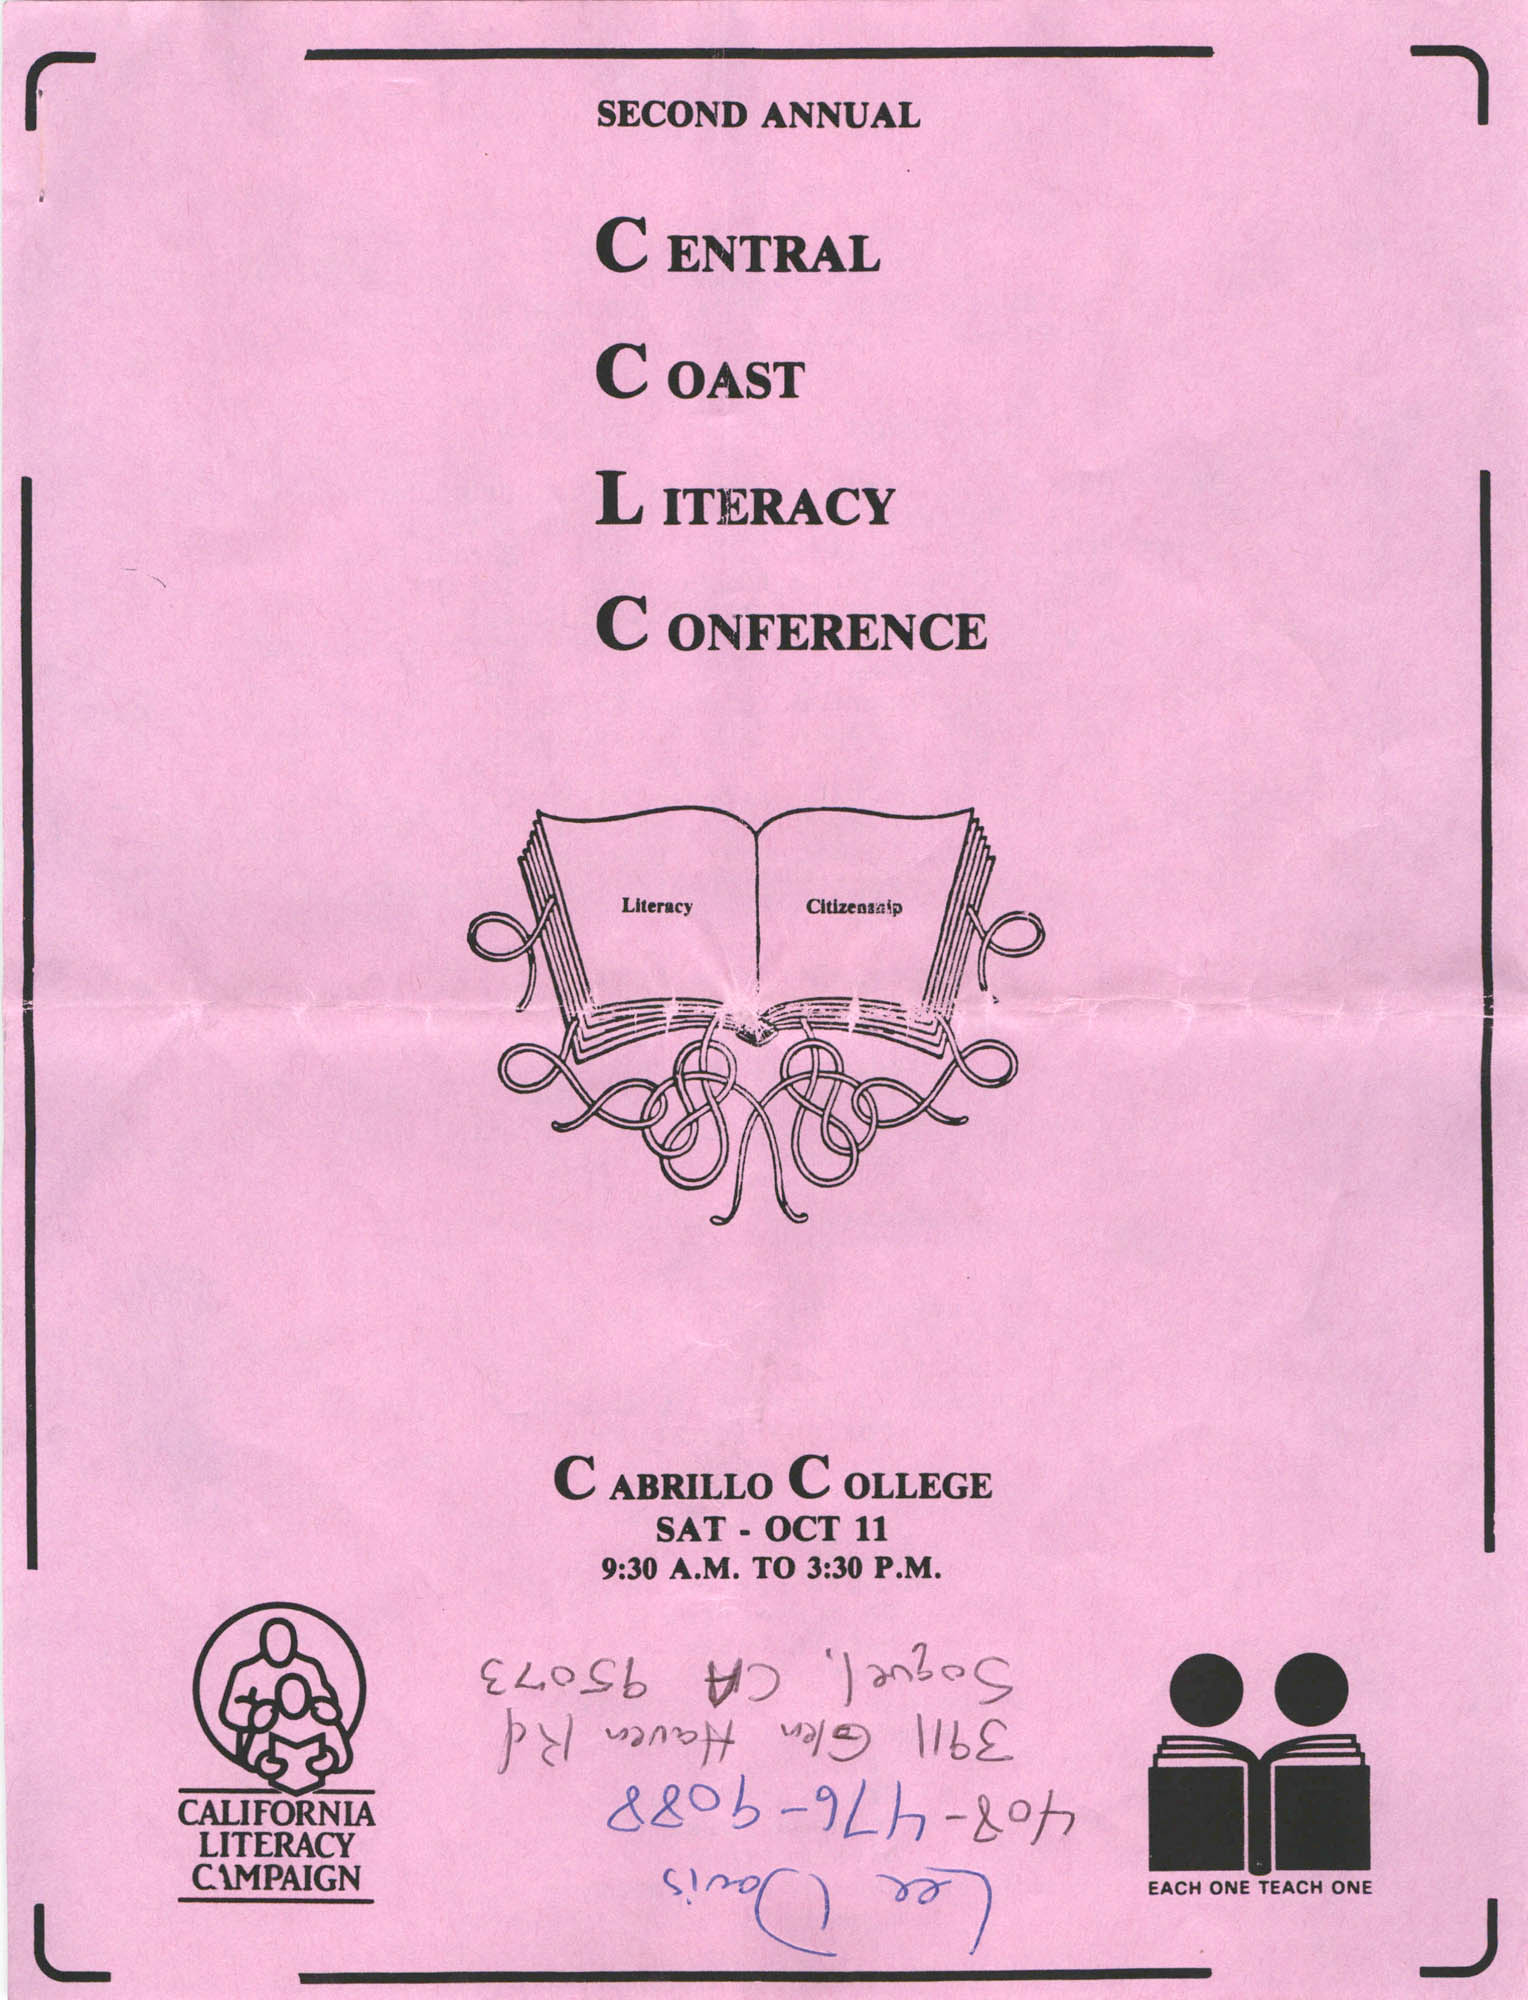 Second Annual Central Coast Literacy Conference Program and Schedule of Events, October 11, 1986, Page 1